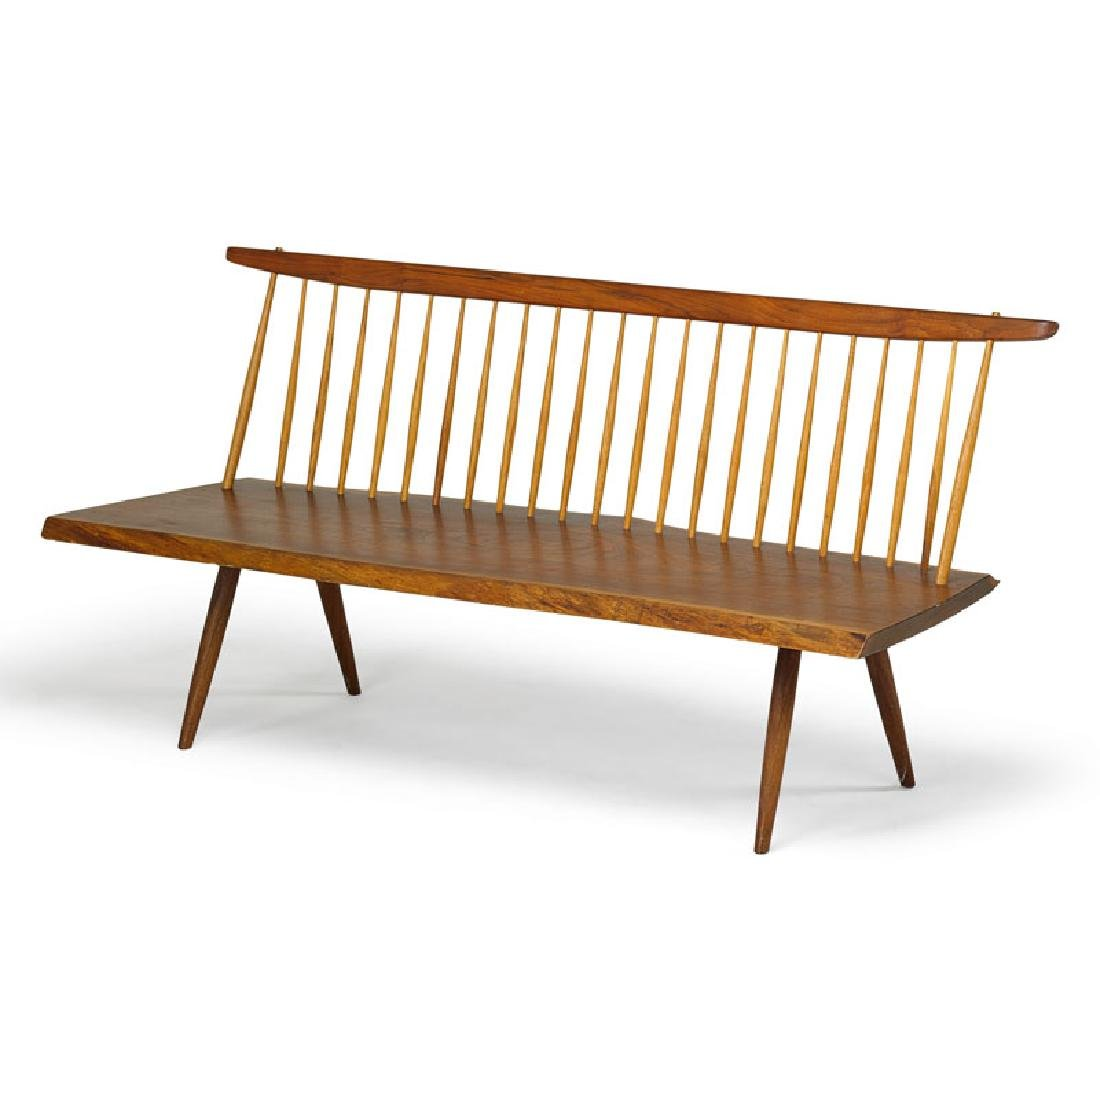 GEORGE NAKASHIMA Bench with back - 2